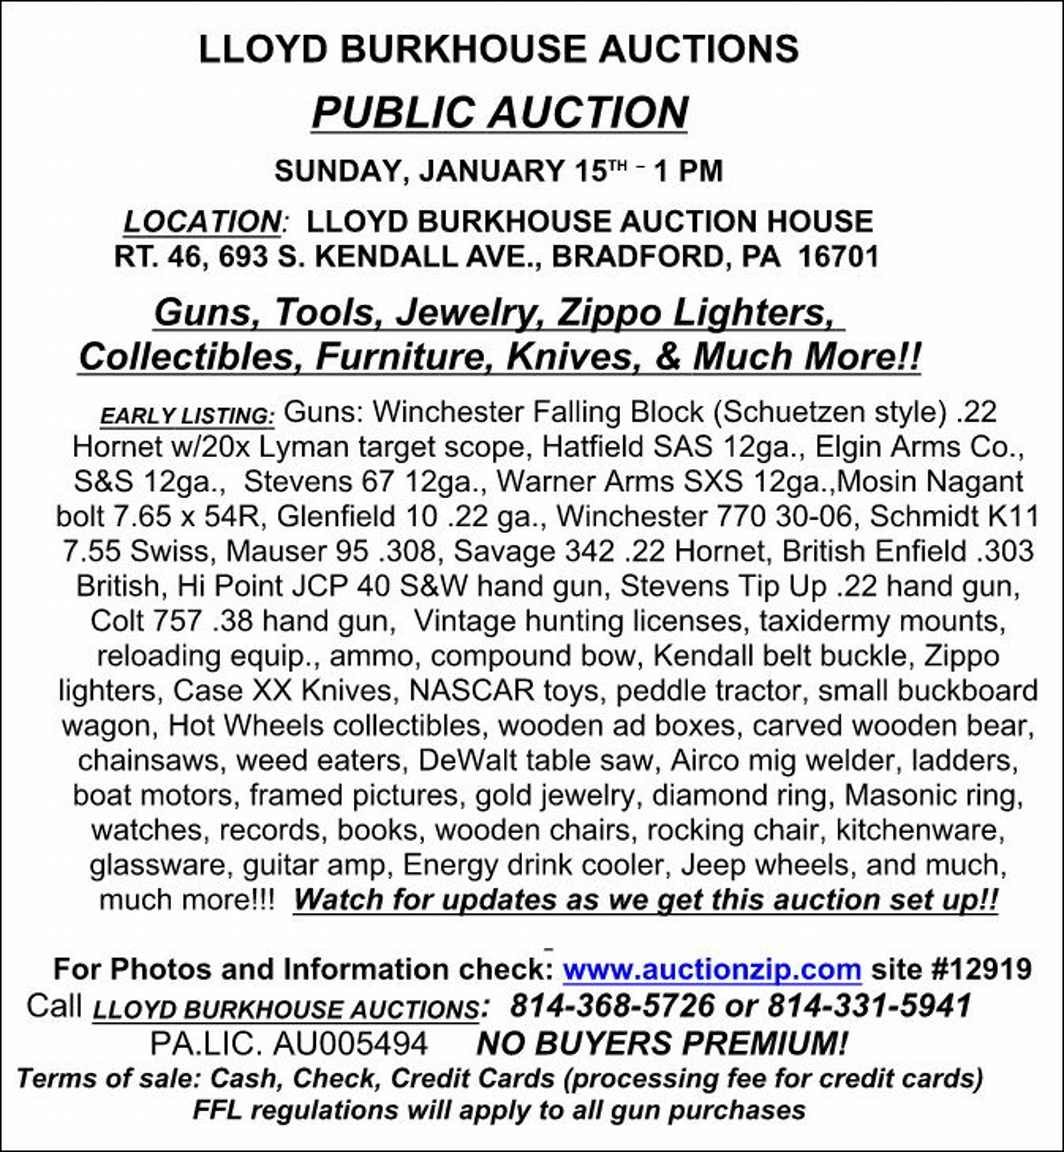 Burkhouse Auction